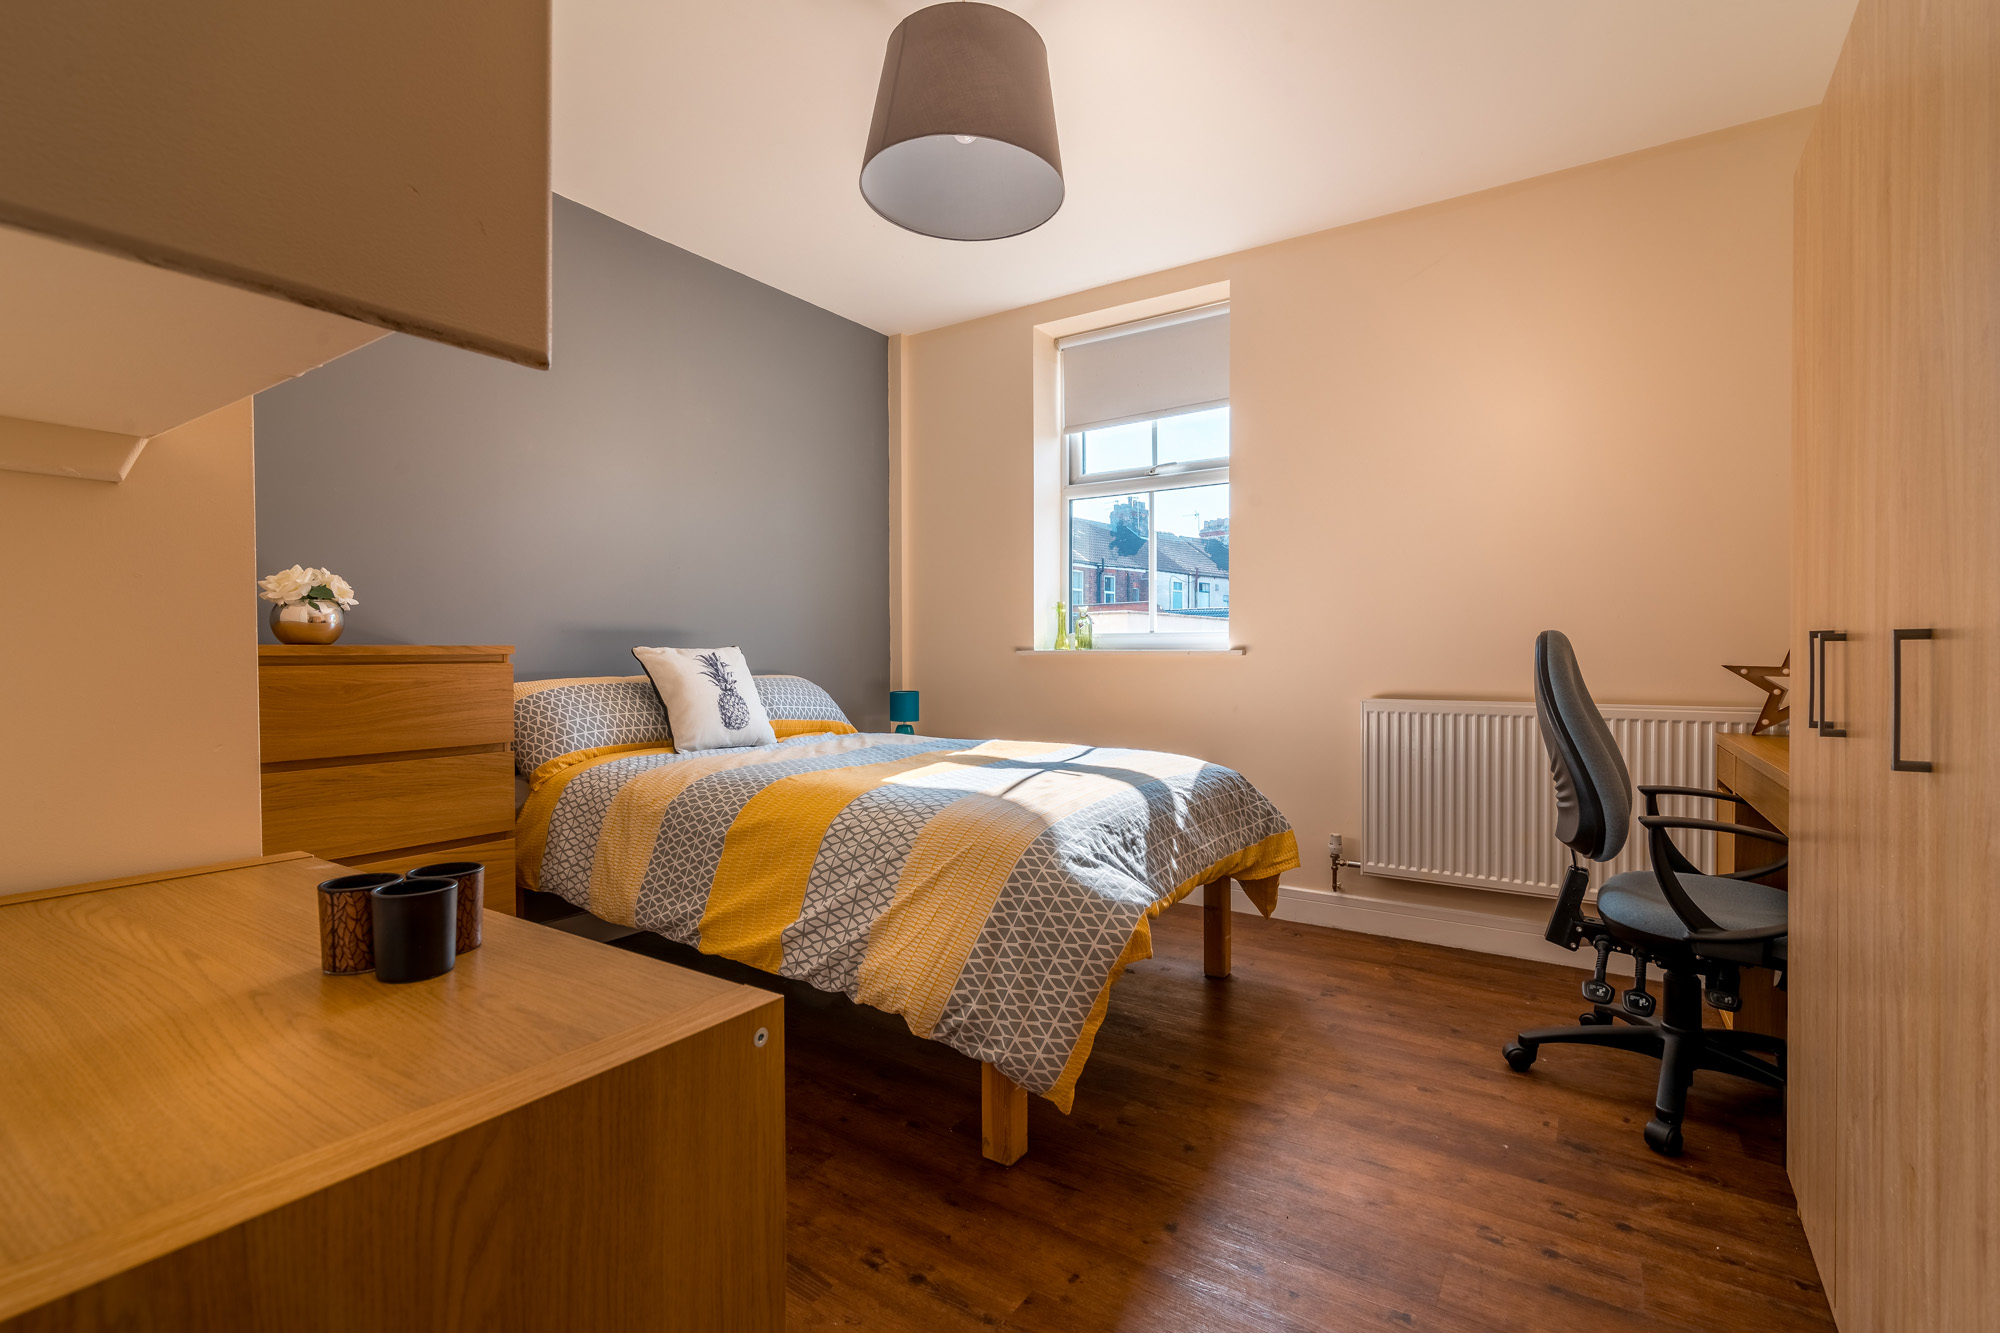 student apartments hull, student accommodation lets hull, student properties hull